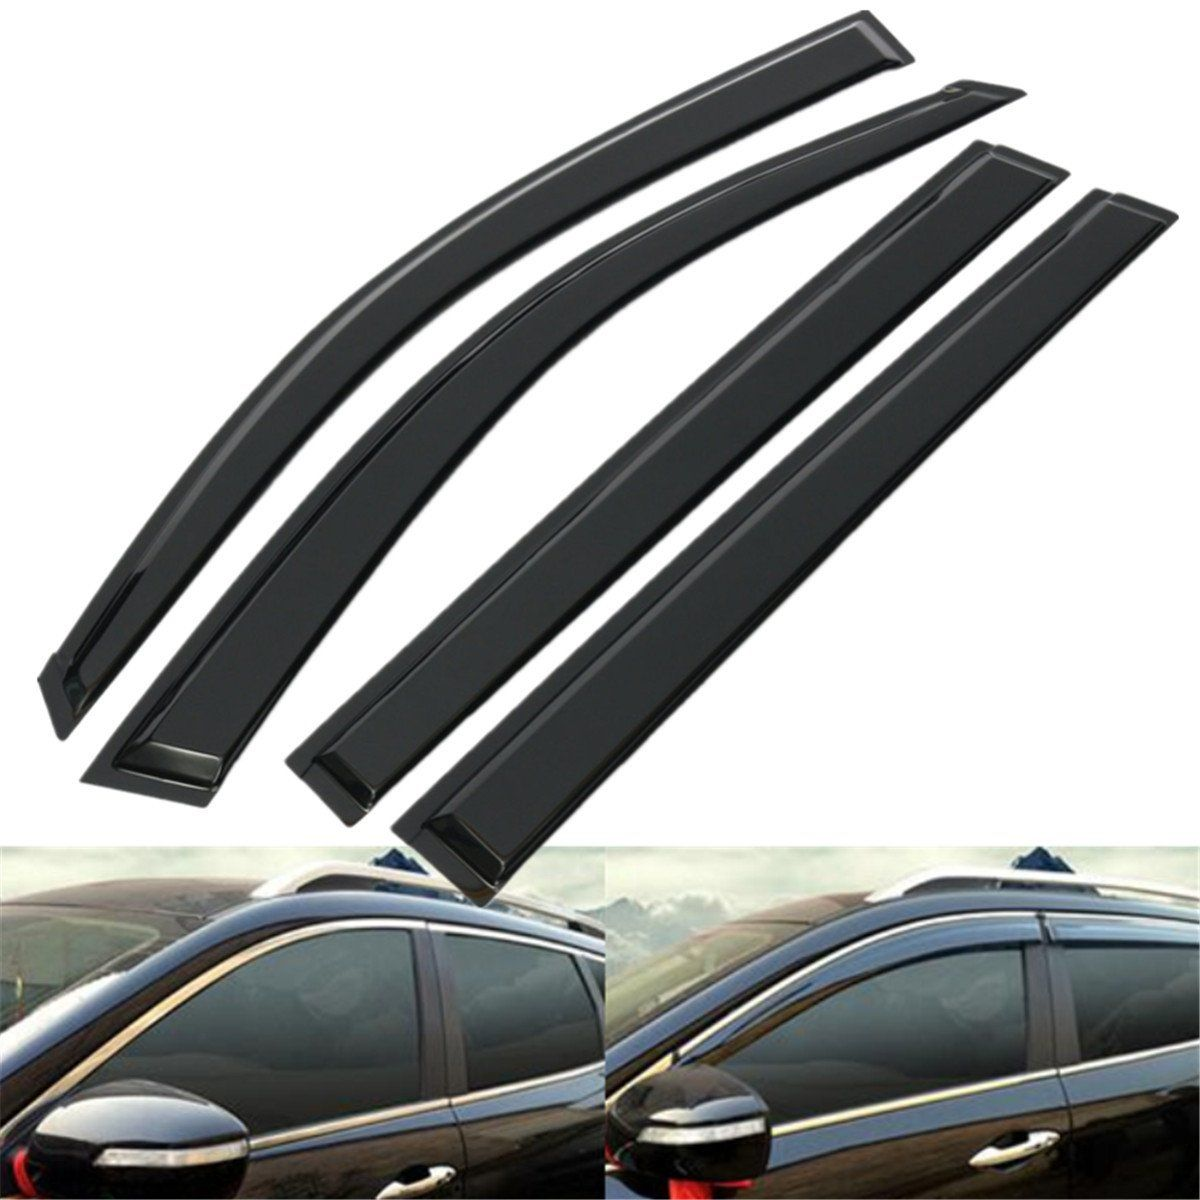 Black Sun Window Visor Rain Guard Set Fits For Toyota Highlander 2008-2012 7501faa9eb4